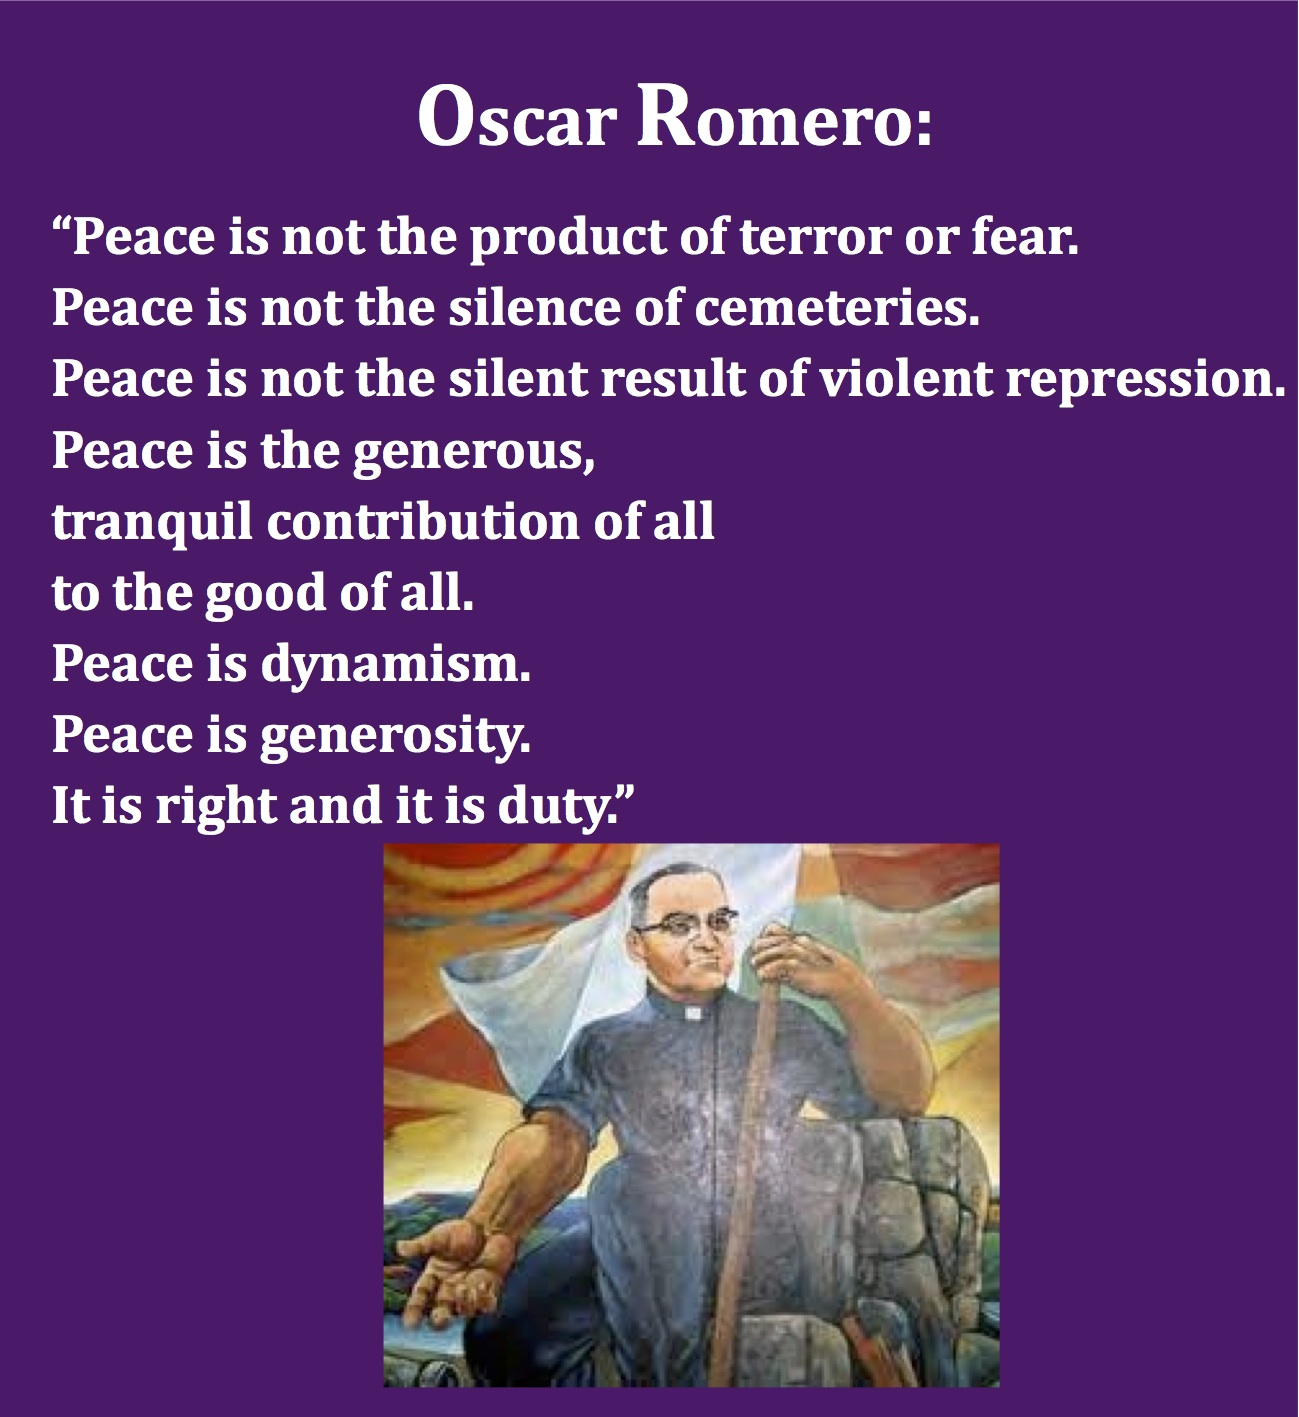 Oscar Romero on bishop oscar romero prayer